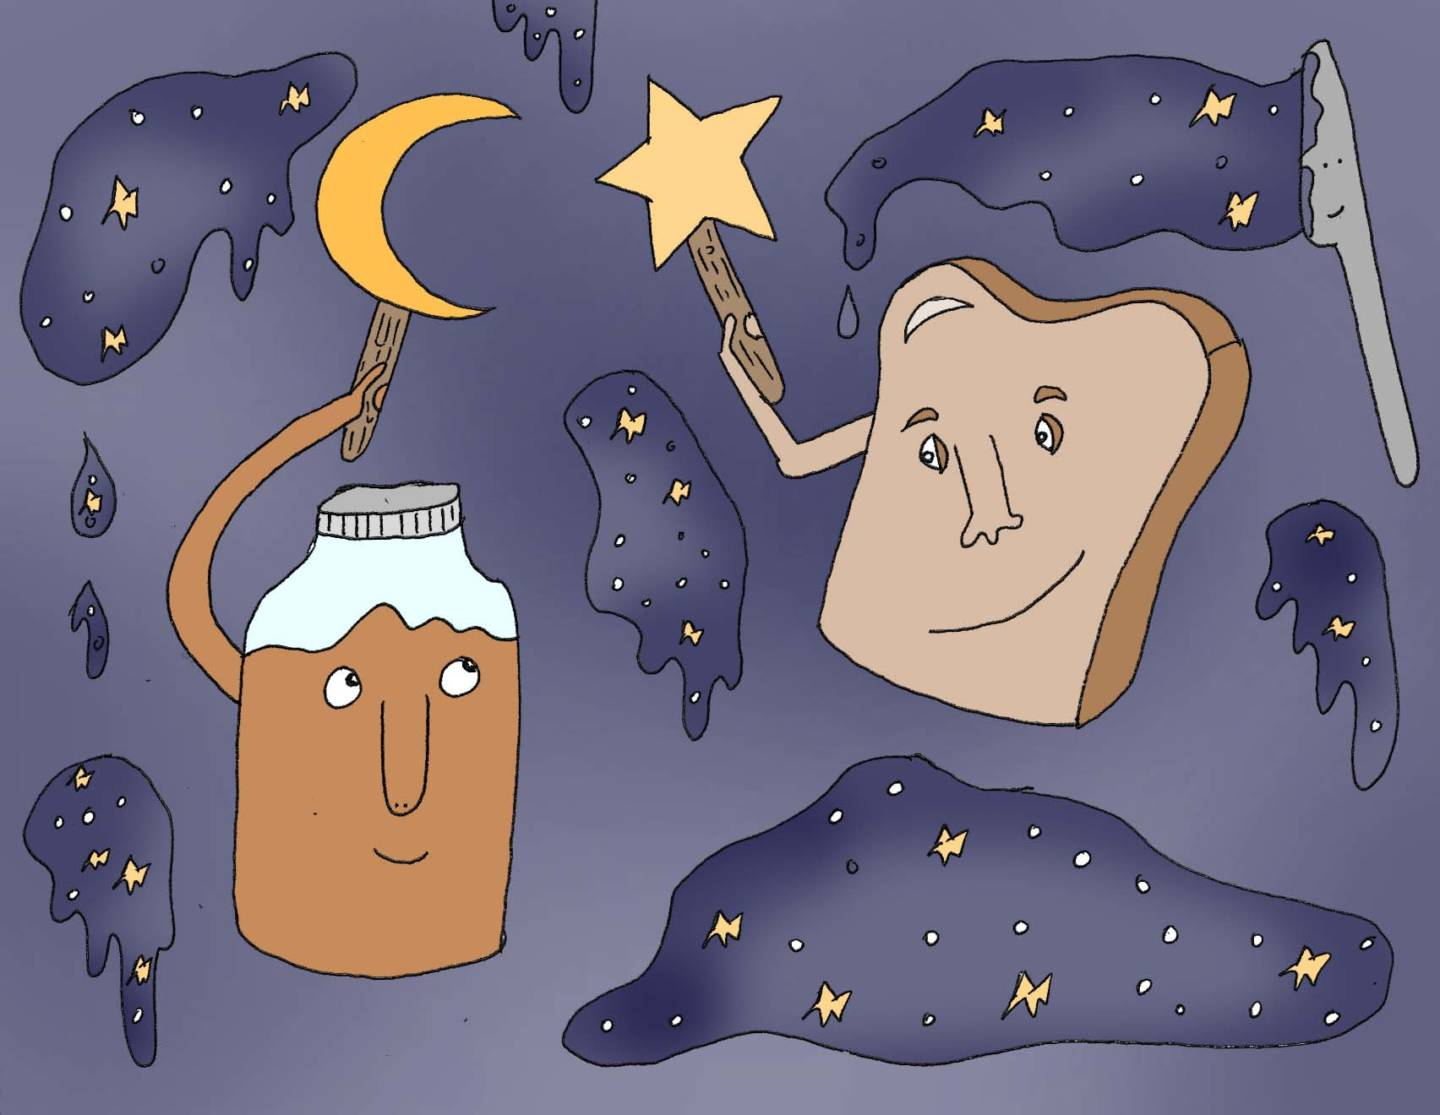 Edible Answers to Insomnia? A Search for Nutritional Solutions for Sleepless Nights